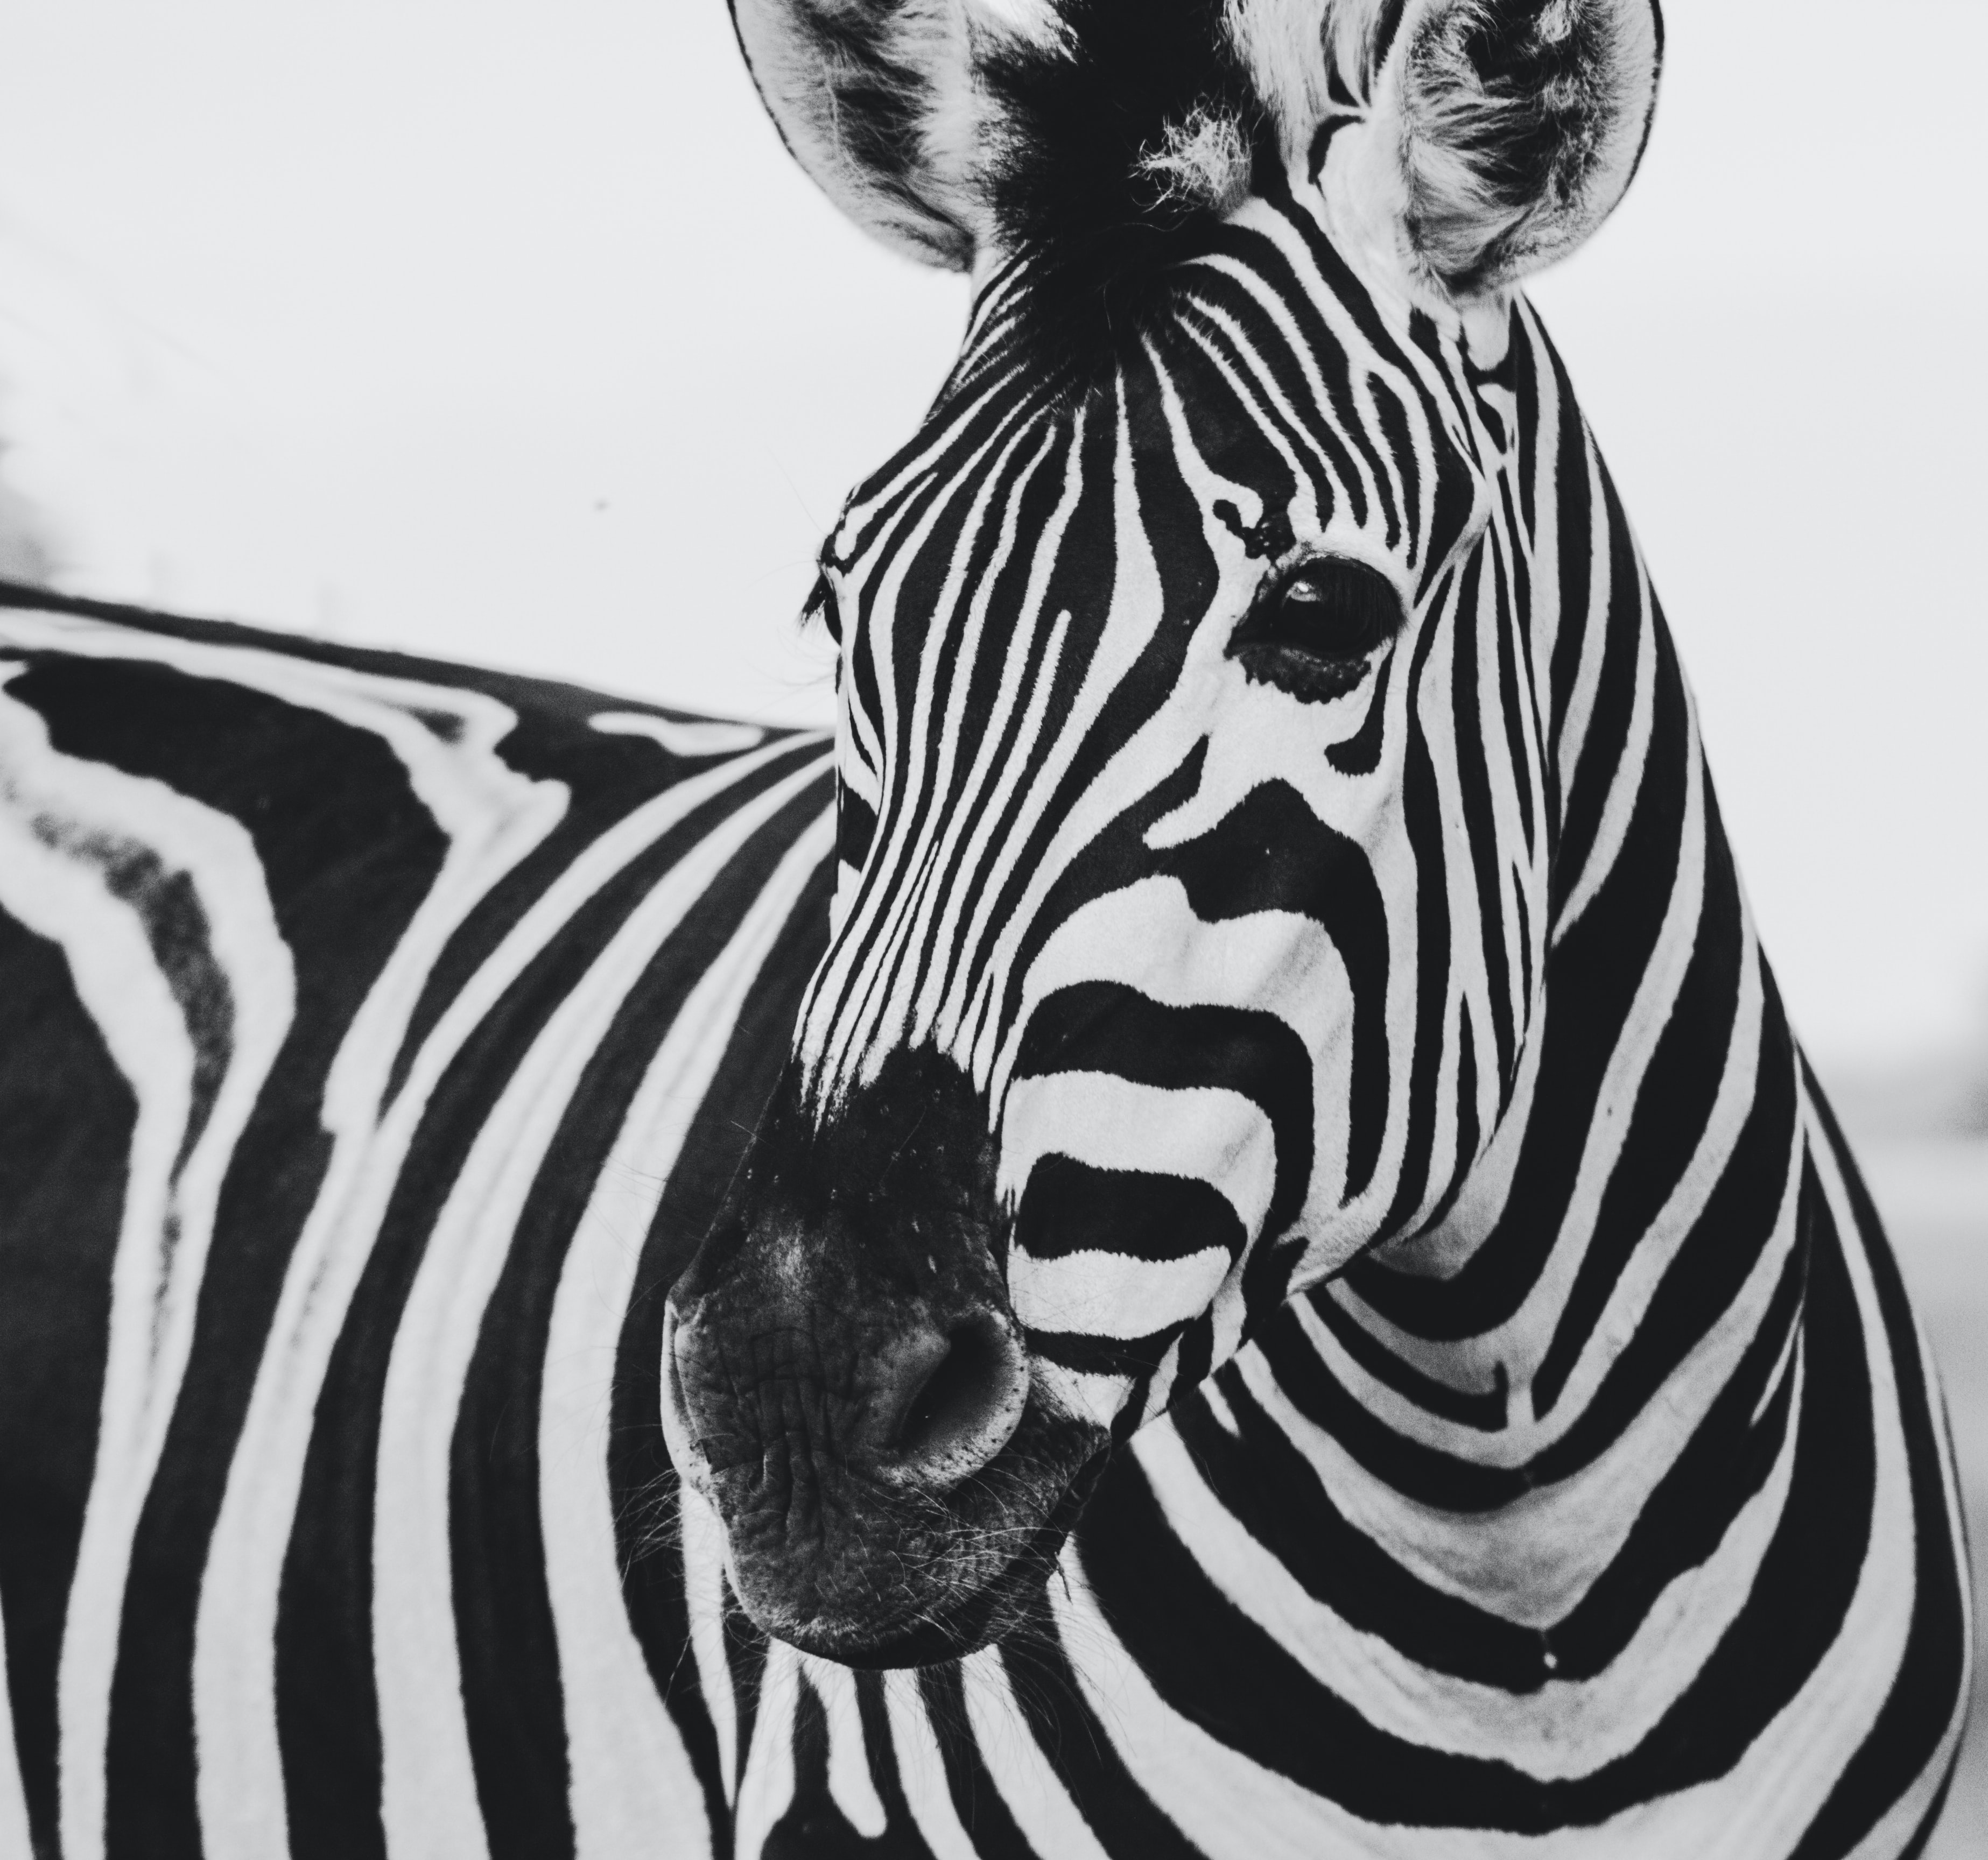 Black and white, striped Zebra in a black and white picture in Knuthenborg Safaripark